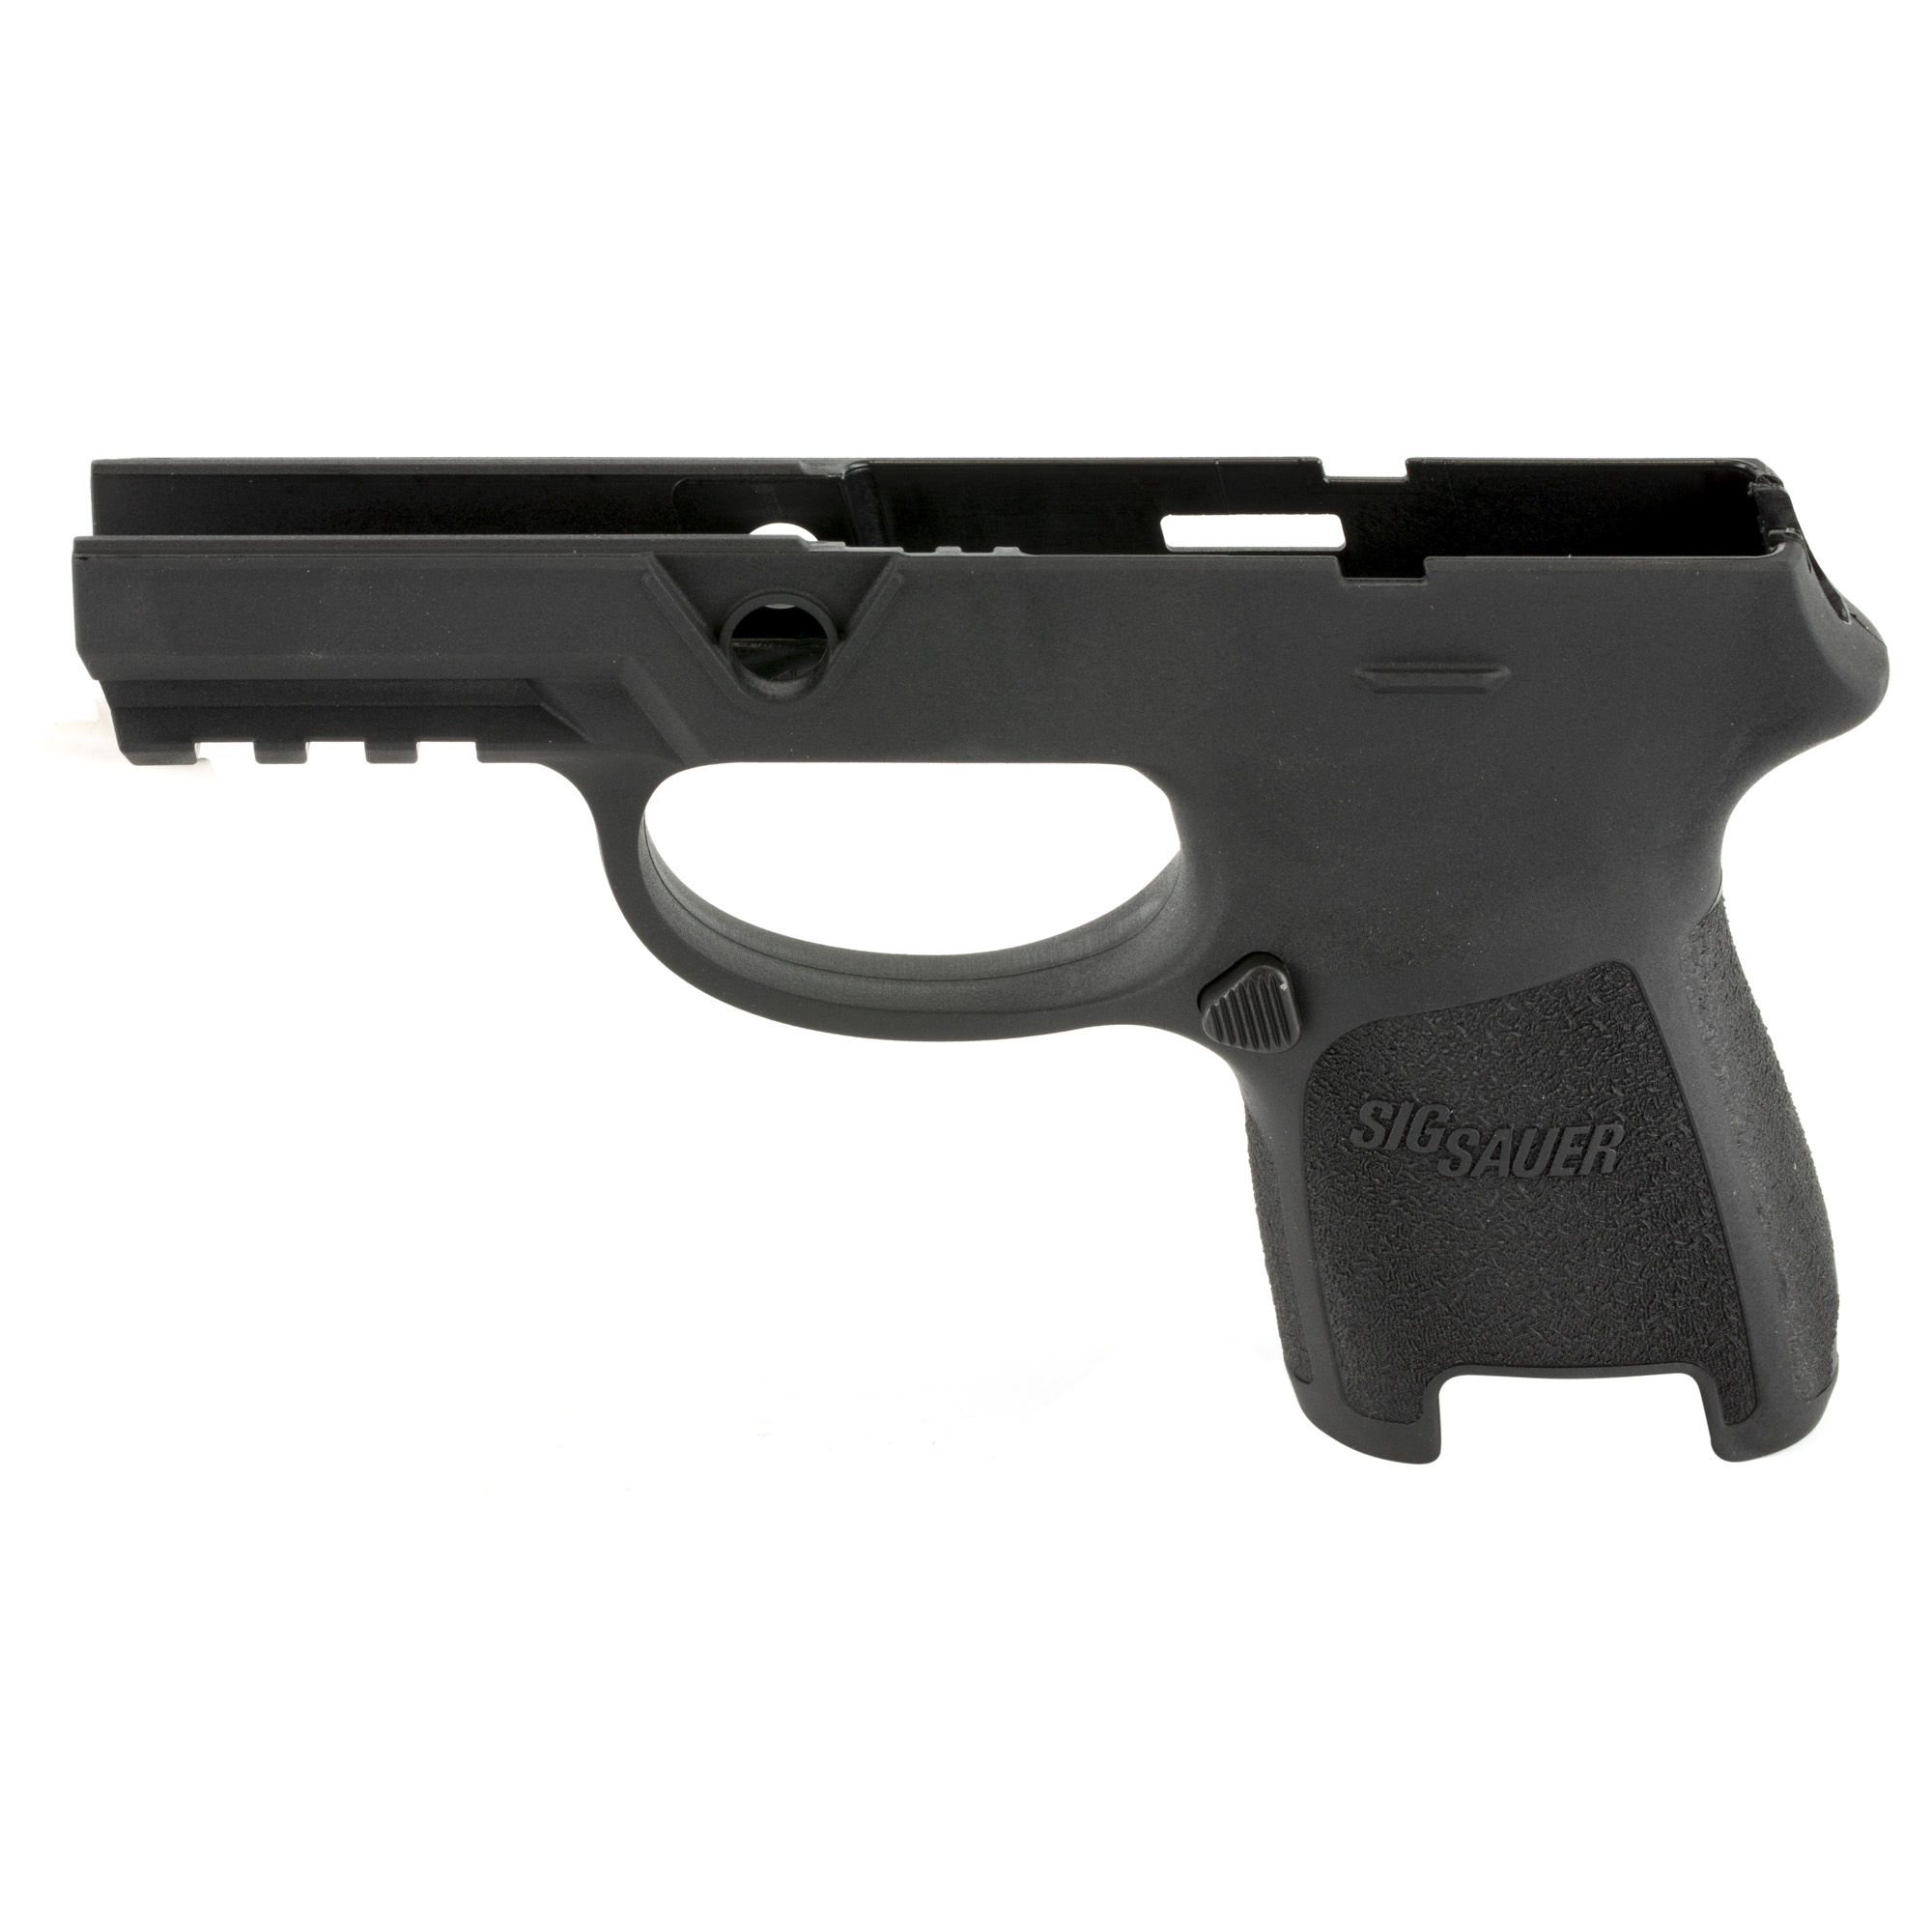 "Install your P320/P250 firing control unit into this Railed Grip Module Assembly to convert to a P320 or P250 compact chambered in 9mm"" .357 SIG"" .40AUTO with your selected grip size. Requires the 9mm"" .357 SIG and .40AUTO slide and barrel."